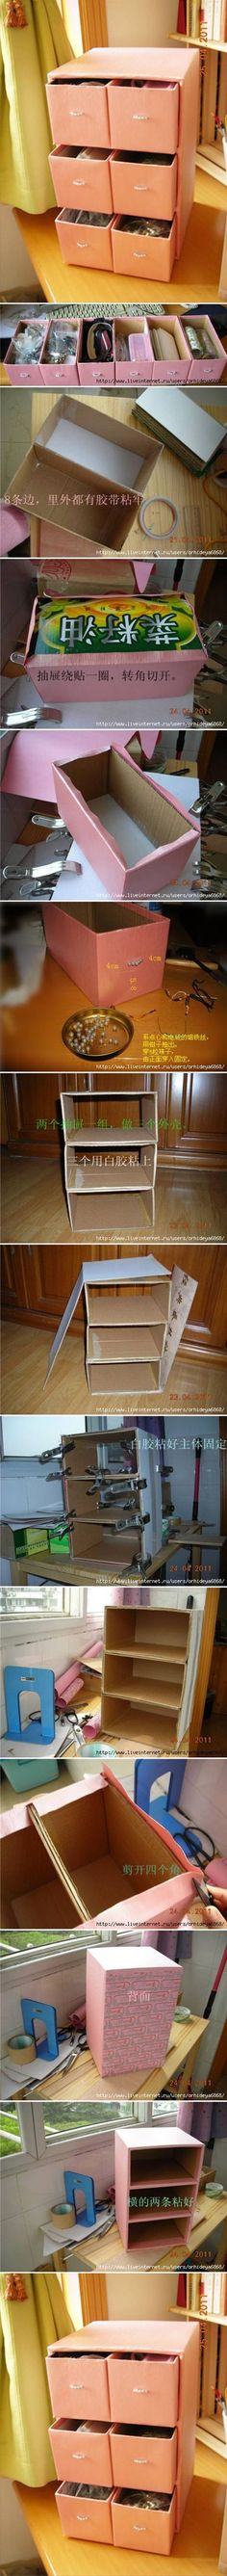 ideas diy storage cardboard craft rooms for 2019 Cardboard Furniture, Cardboard Crafts, Diy Furniture, Cardboard Drawers, Cardboard Storage, Craft Organization, Craft Storage, Diy Storage Boxes, Drawer Storage